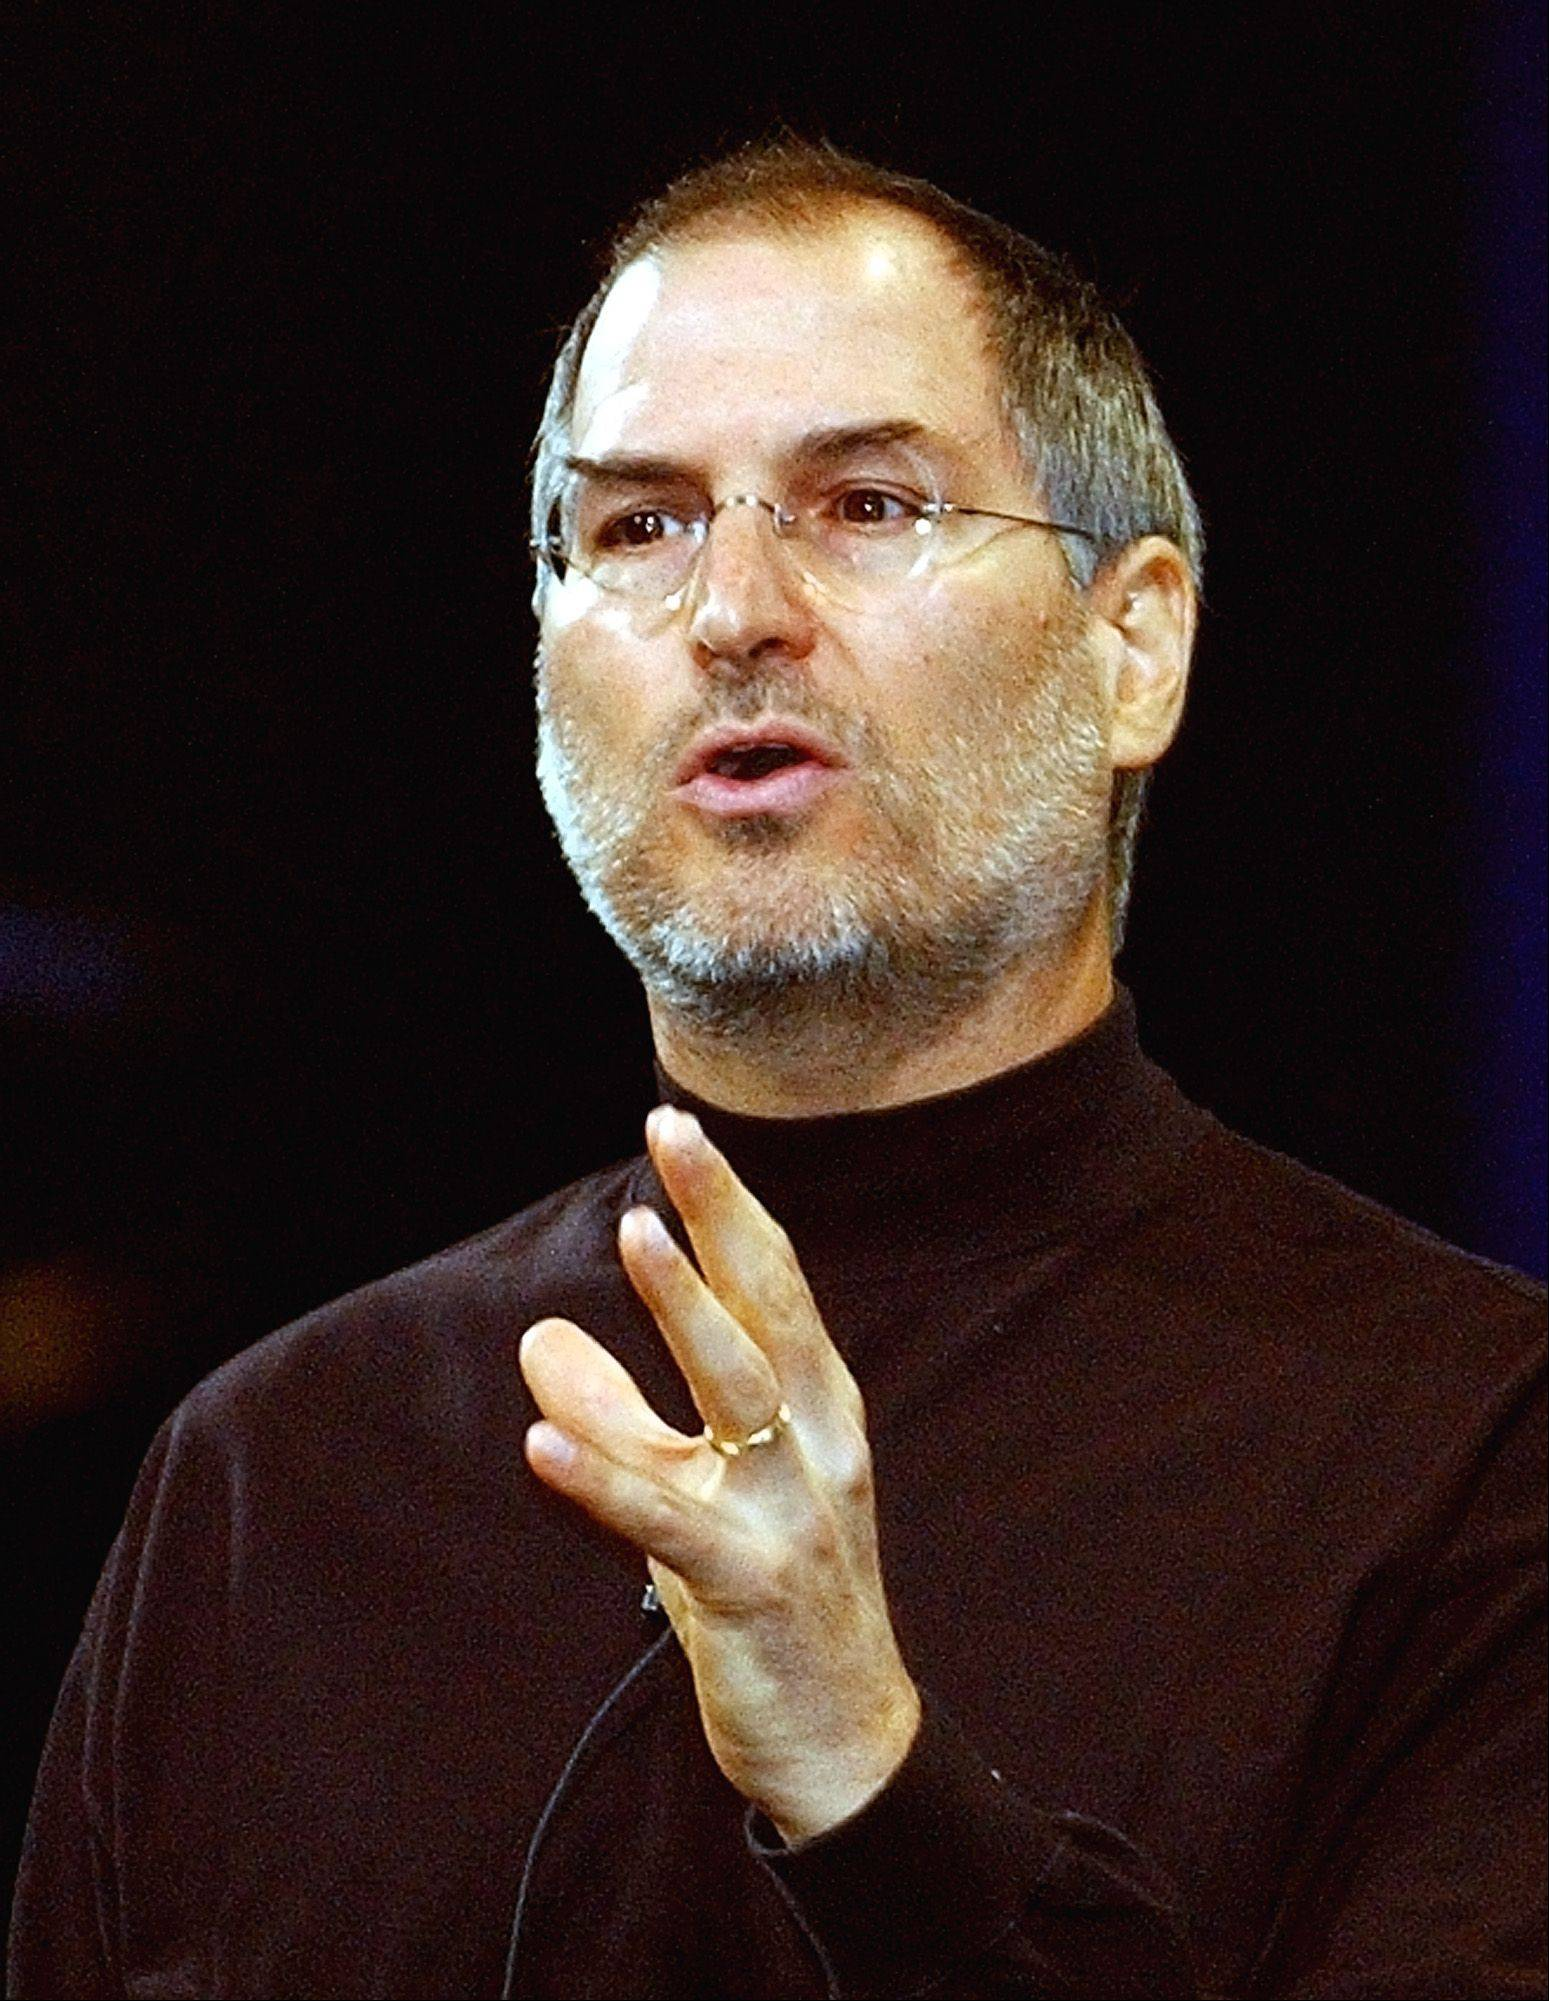 Apple CEO Steve Jobs has spent much of the last two years away from day-to-day control of his business as he battled health concerns.